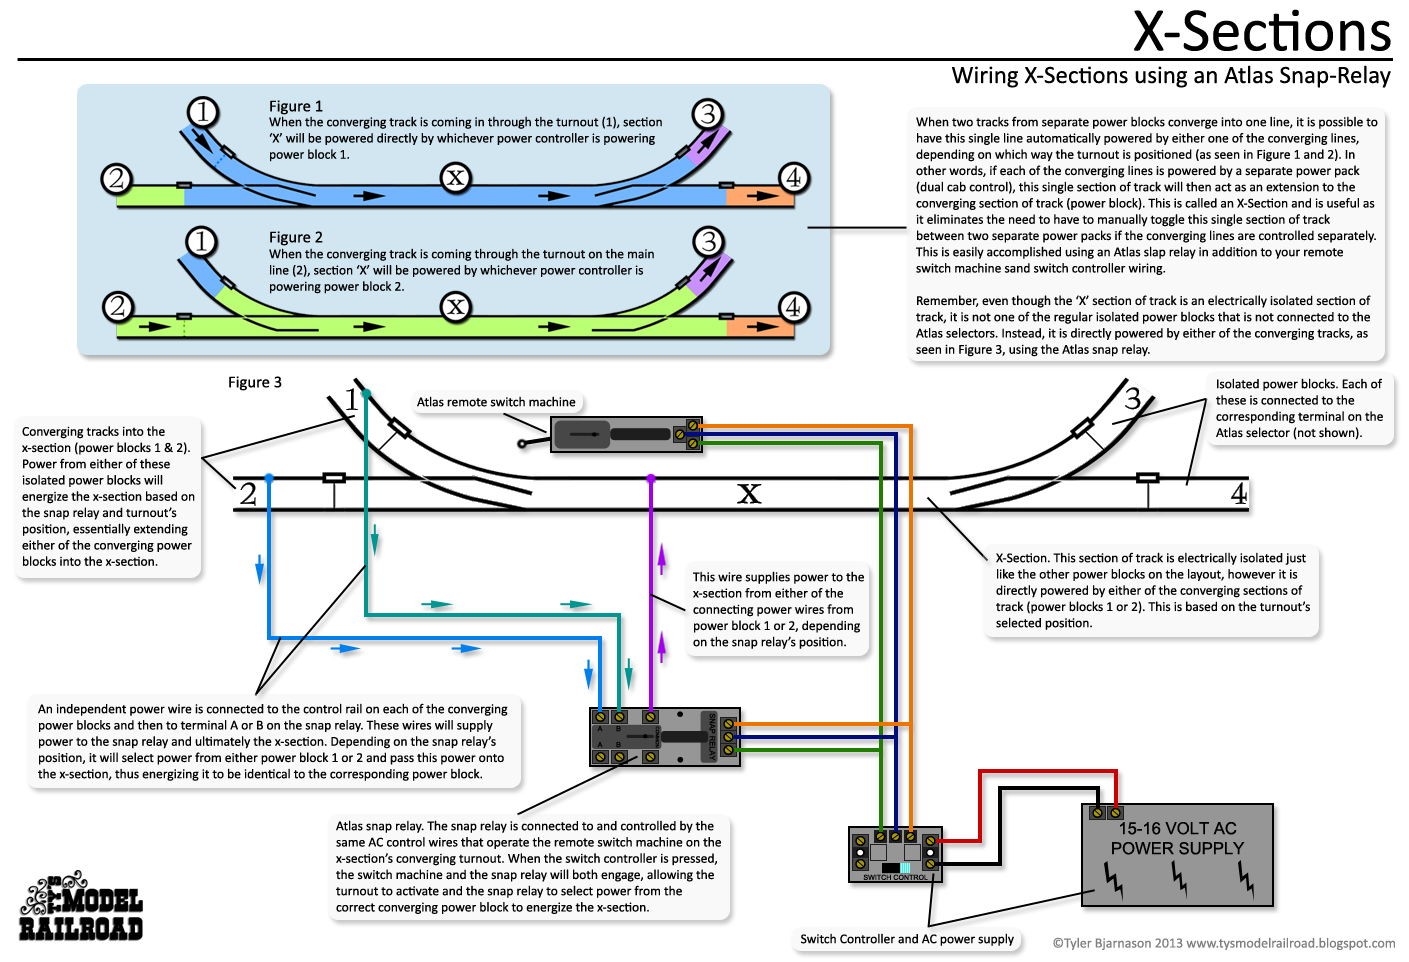 Tys Model Railroad Wiring Diagrams Motor Is This Correct How To Wire An X Section Using Atlas Snap Relay And Existing Remote Switch